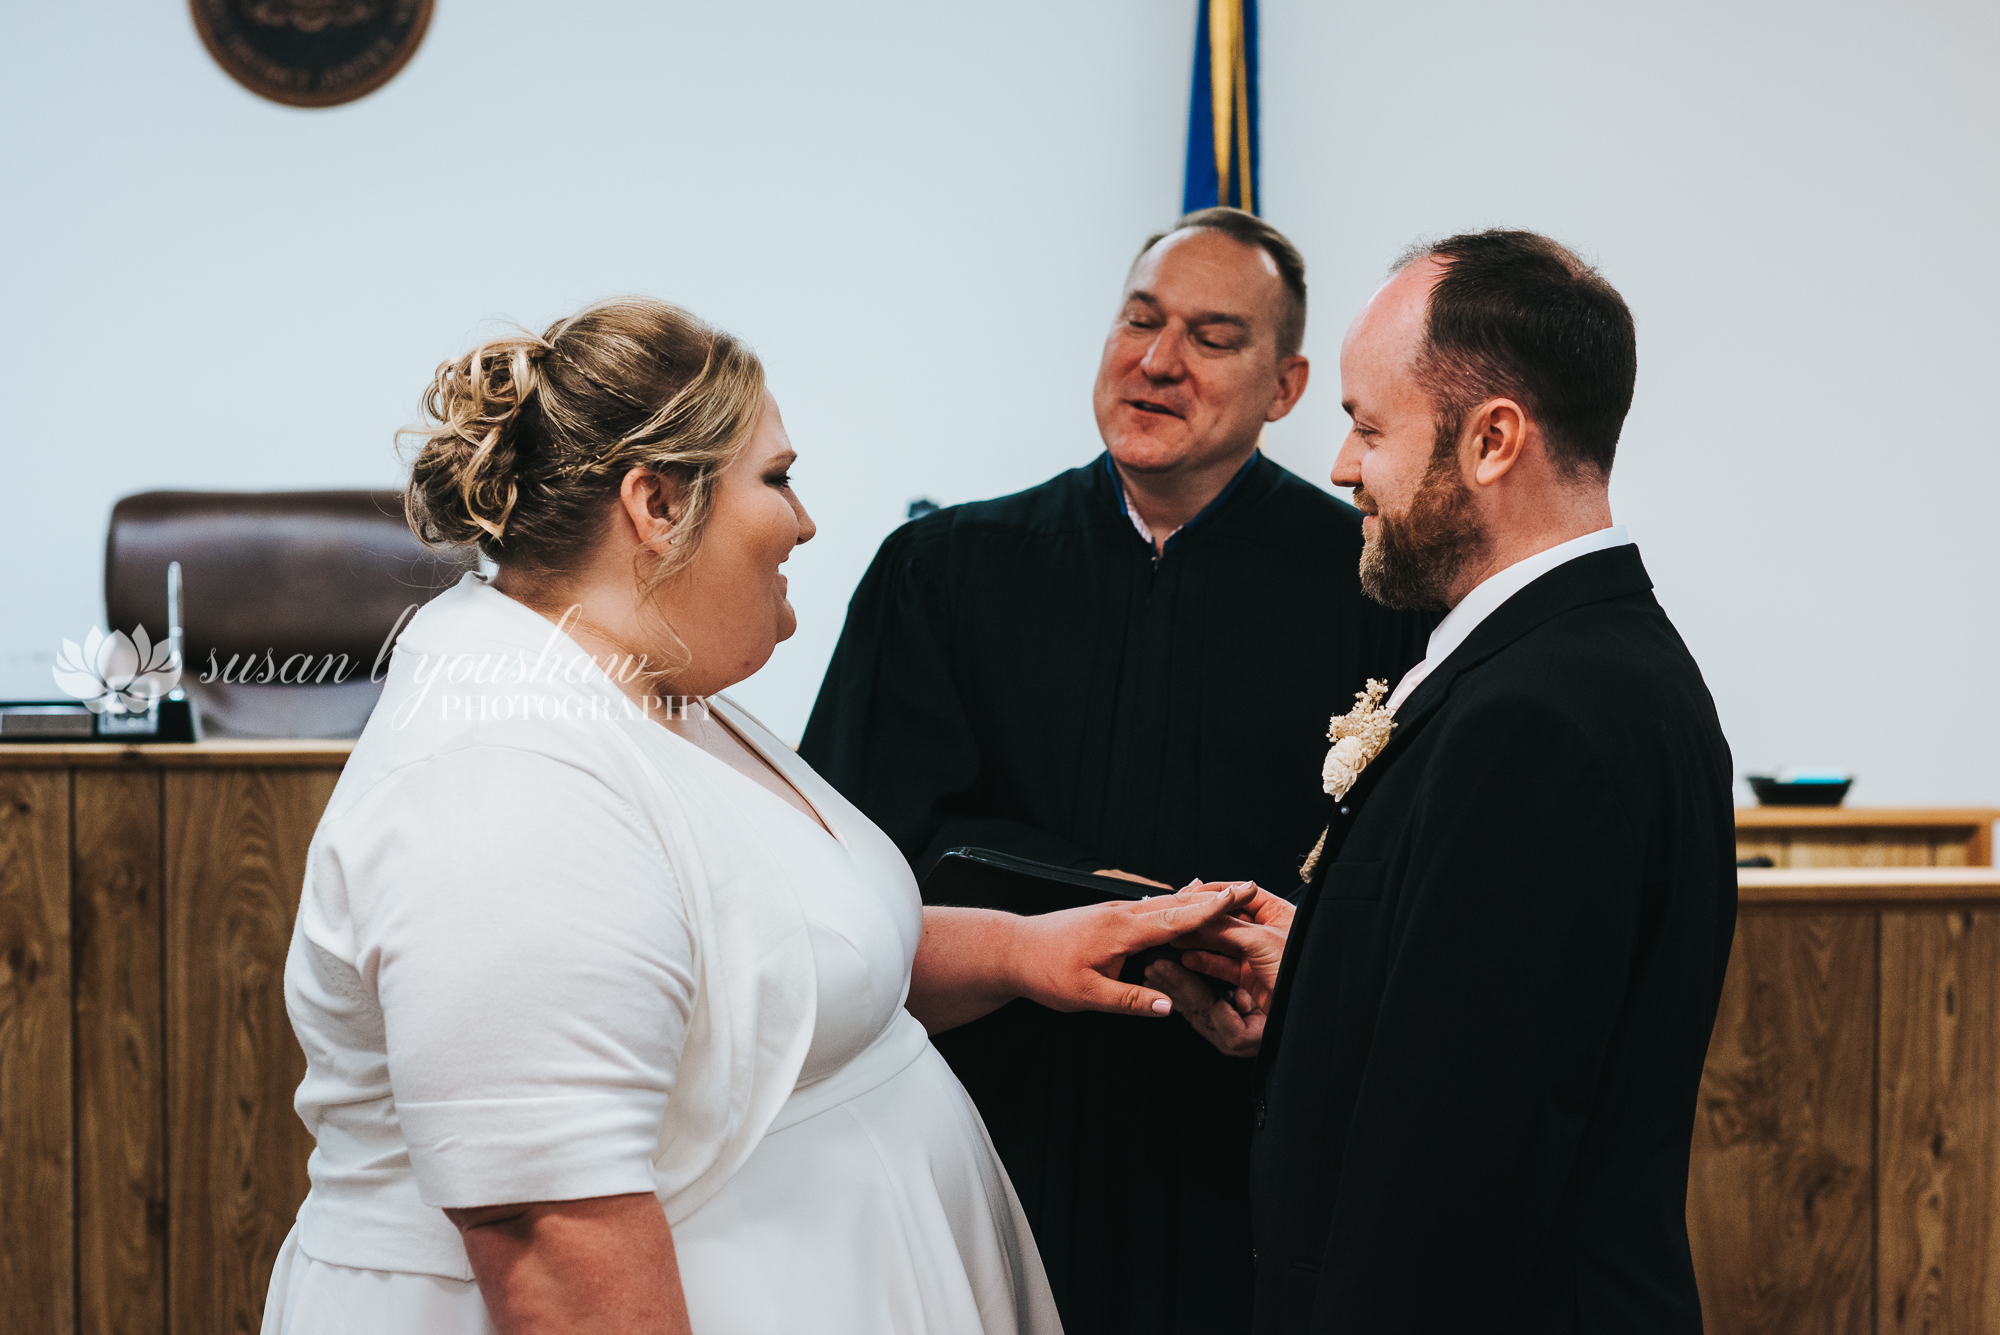 Bill and Sarah Wedding Photos 06-08-2019 SLY Photography -31.jpg